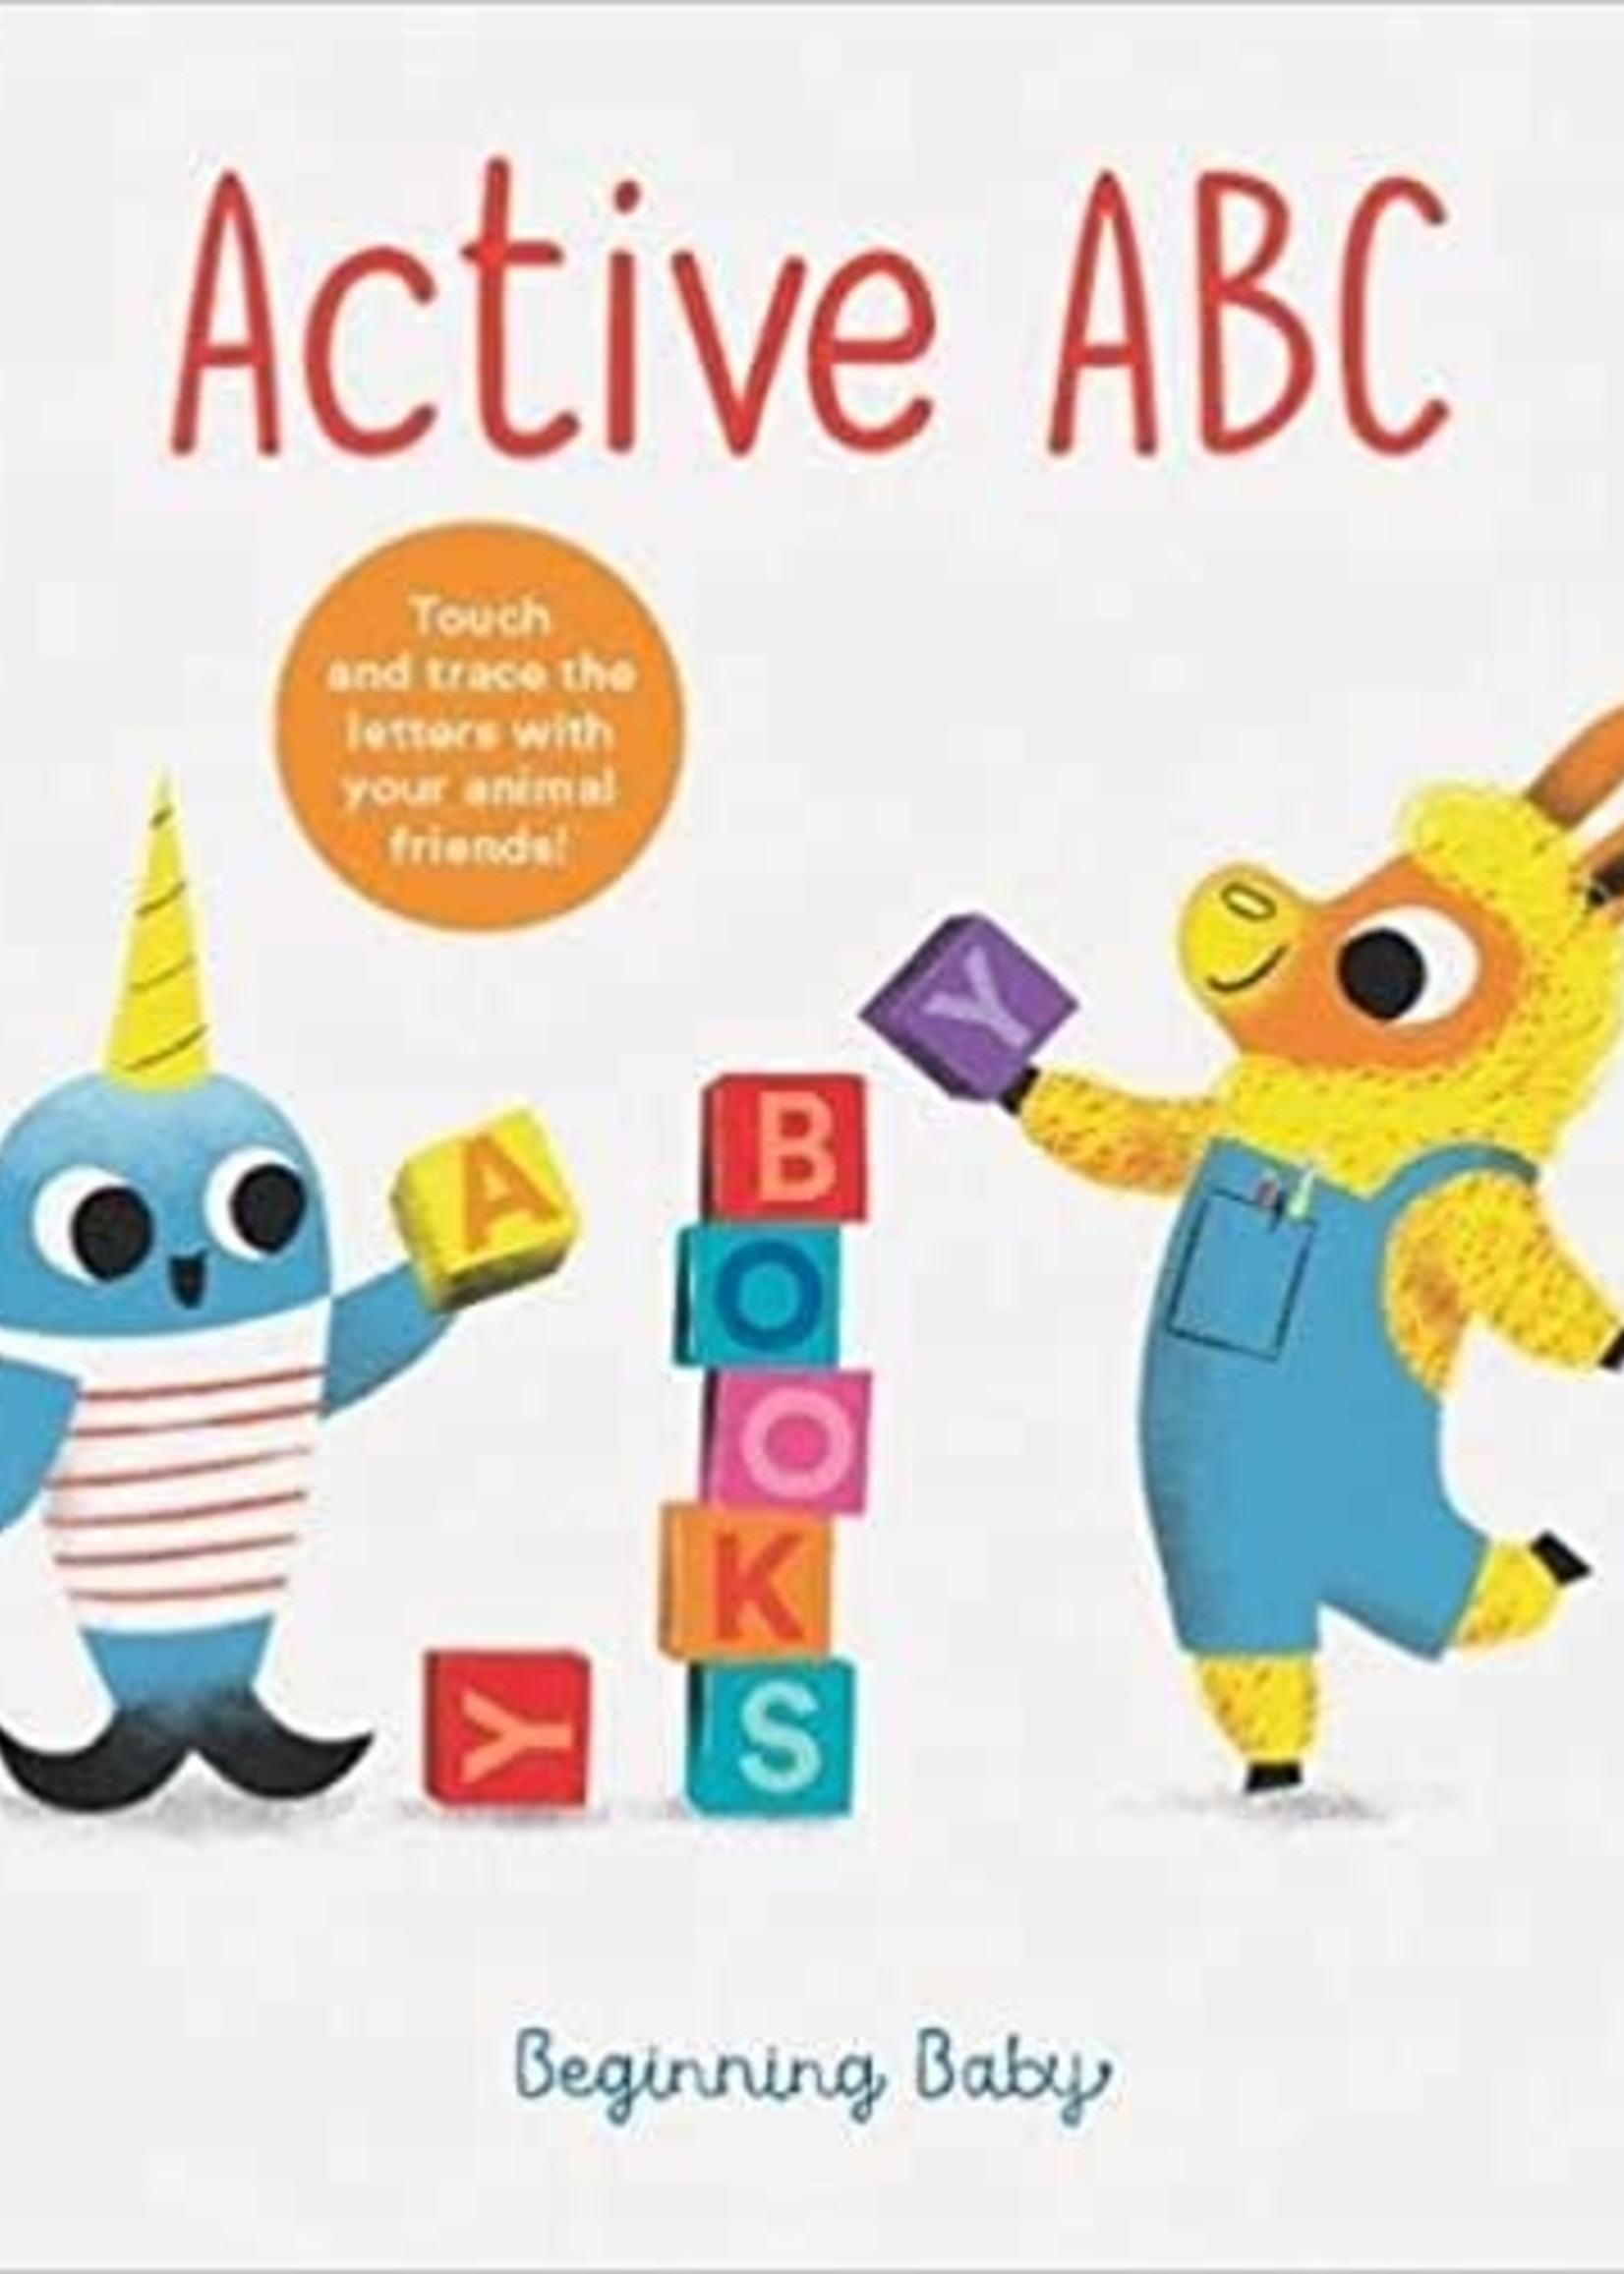 Active ABC: Beginning Baby by Nicola Slater